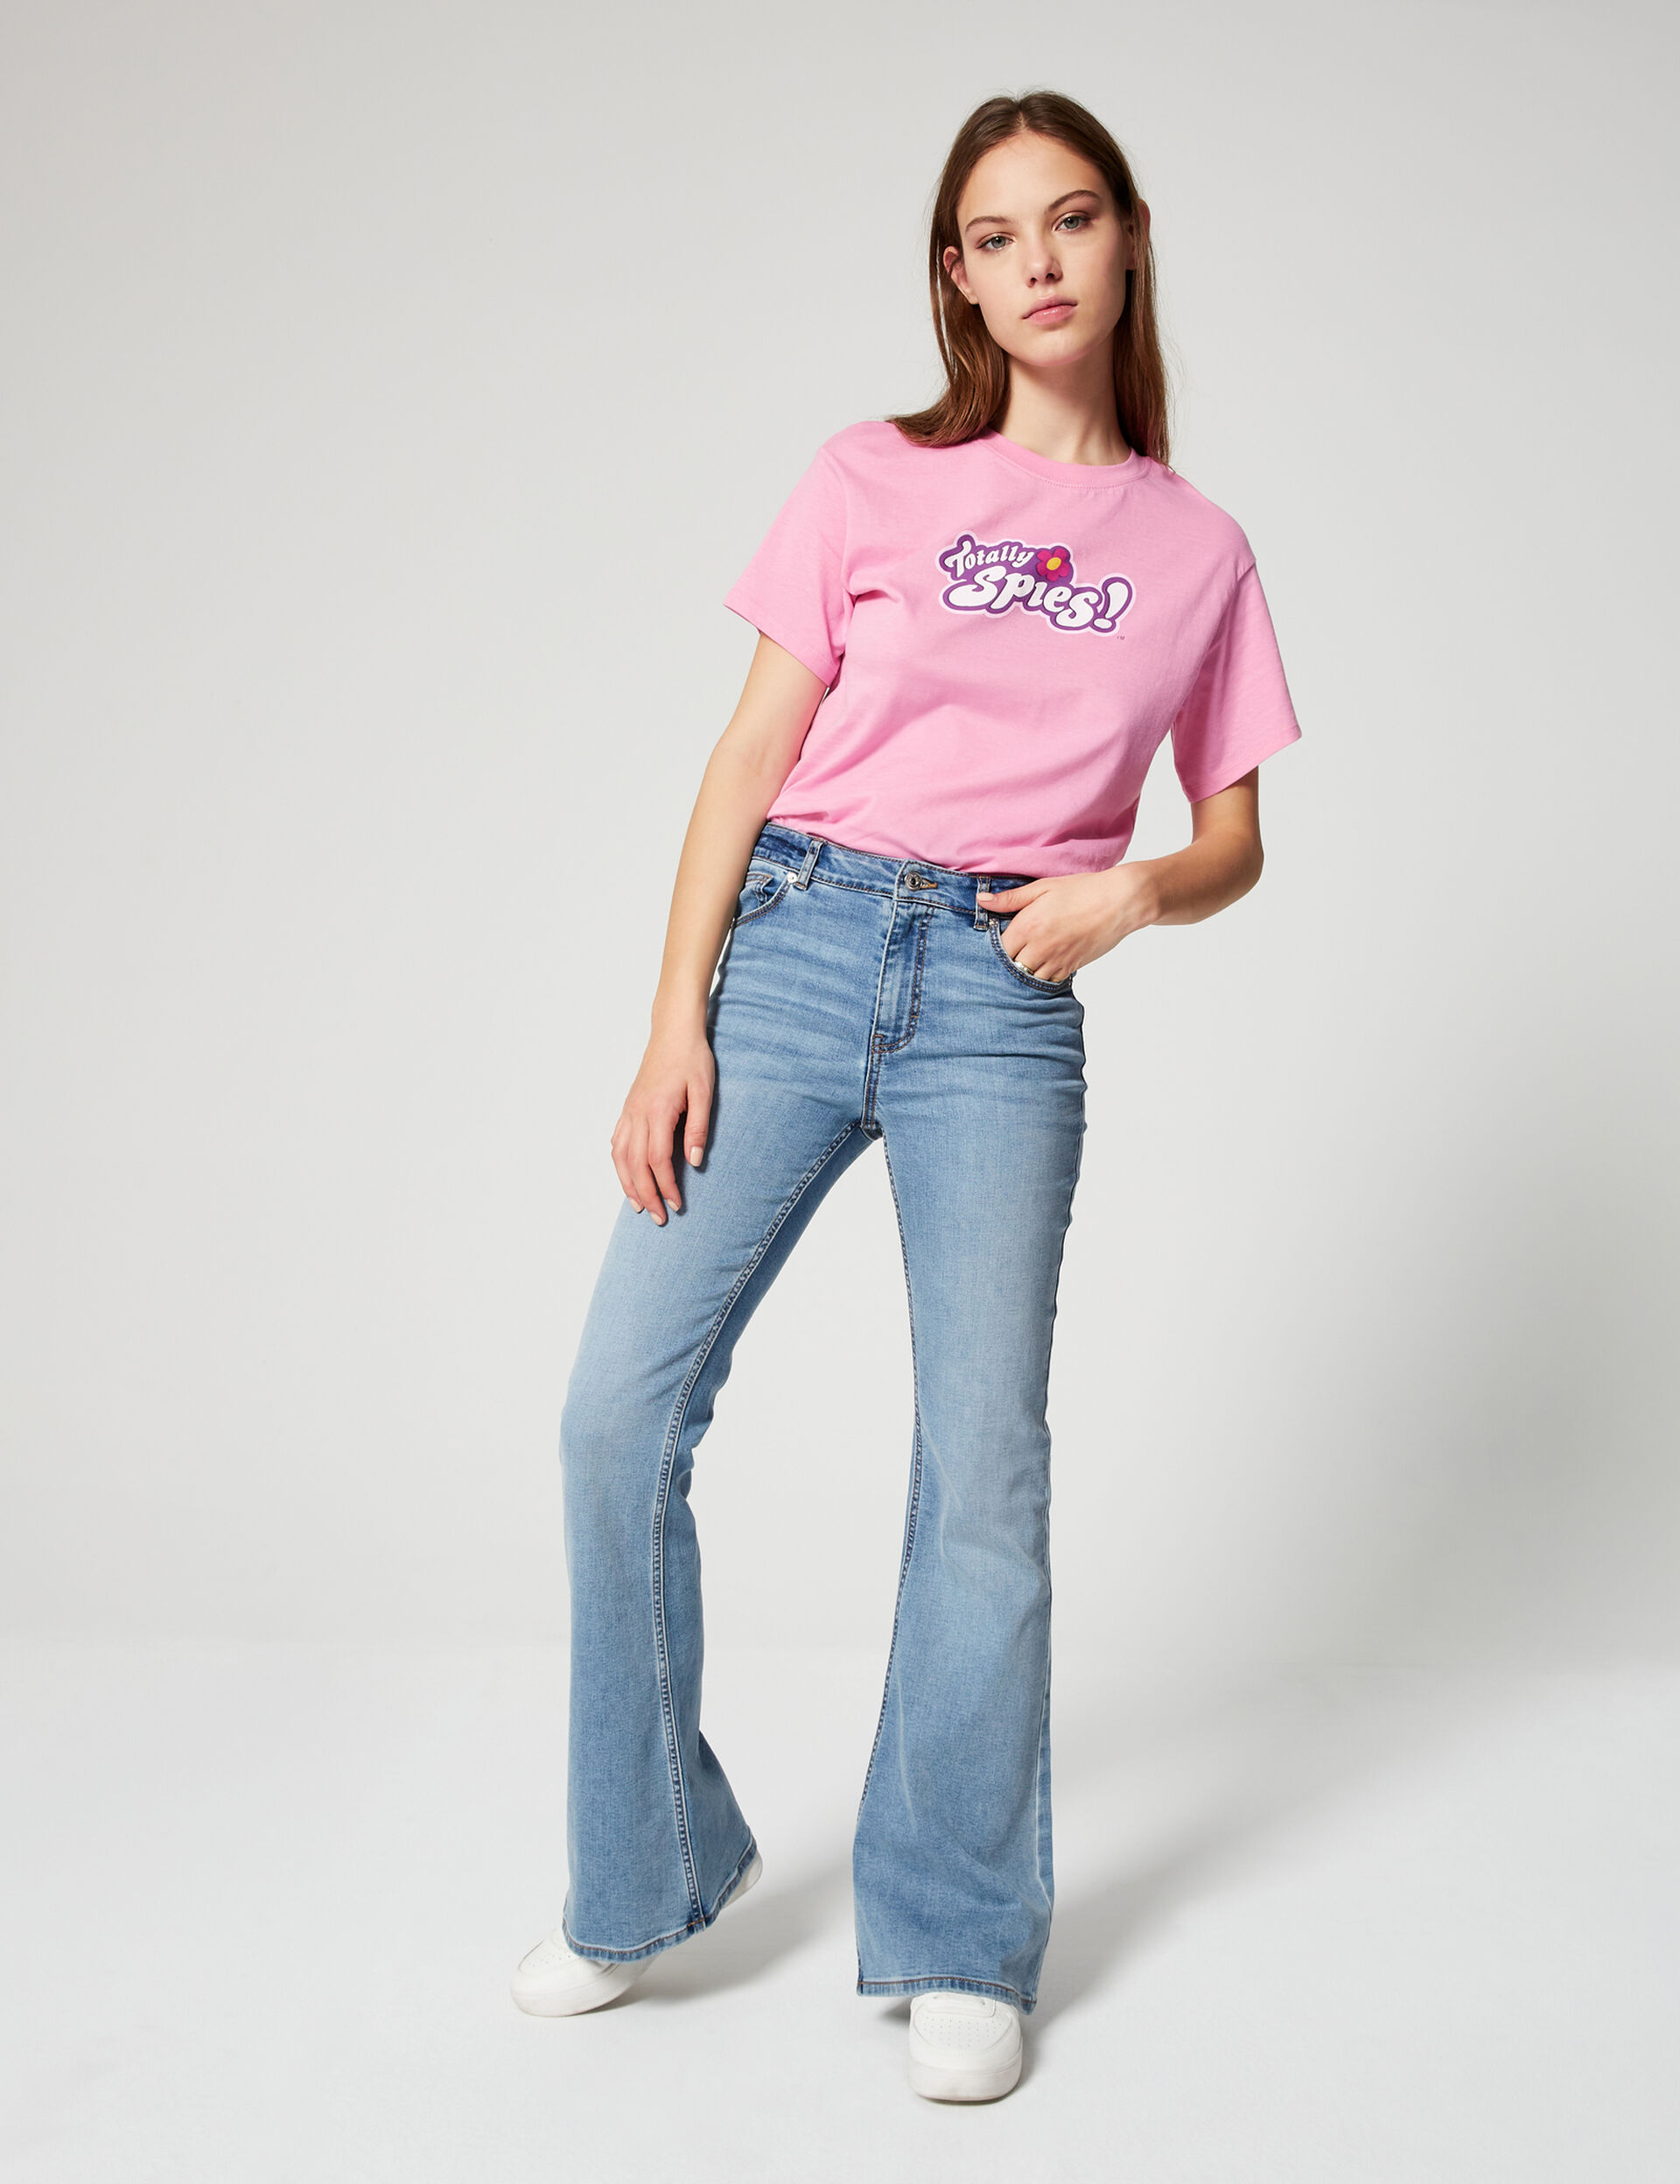 Totally Spies T-shirt